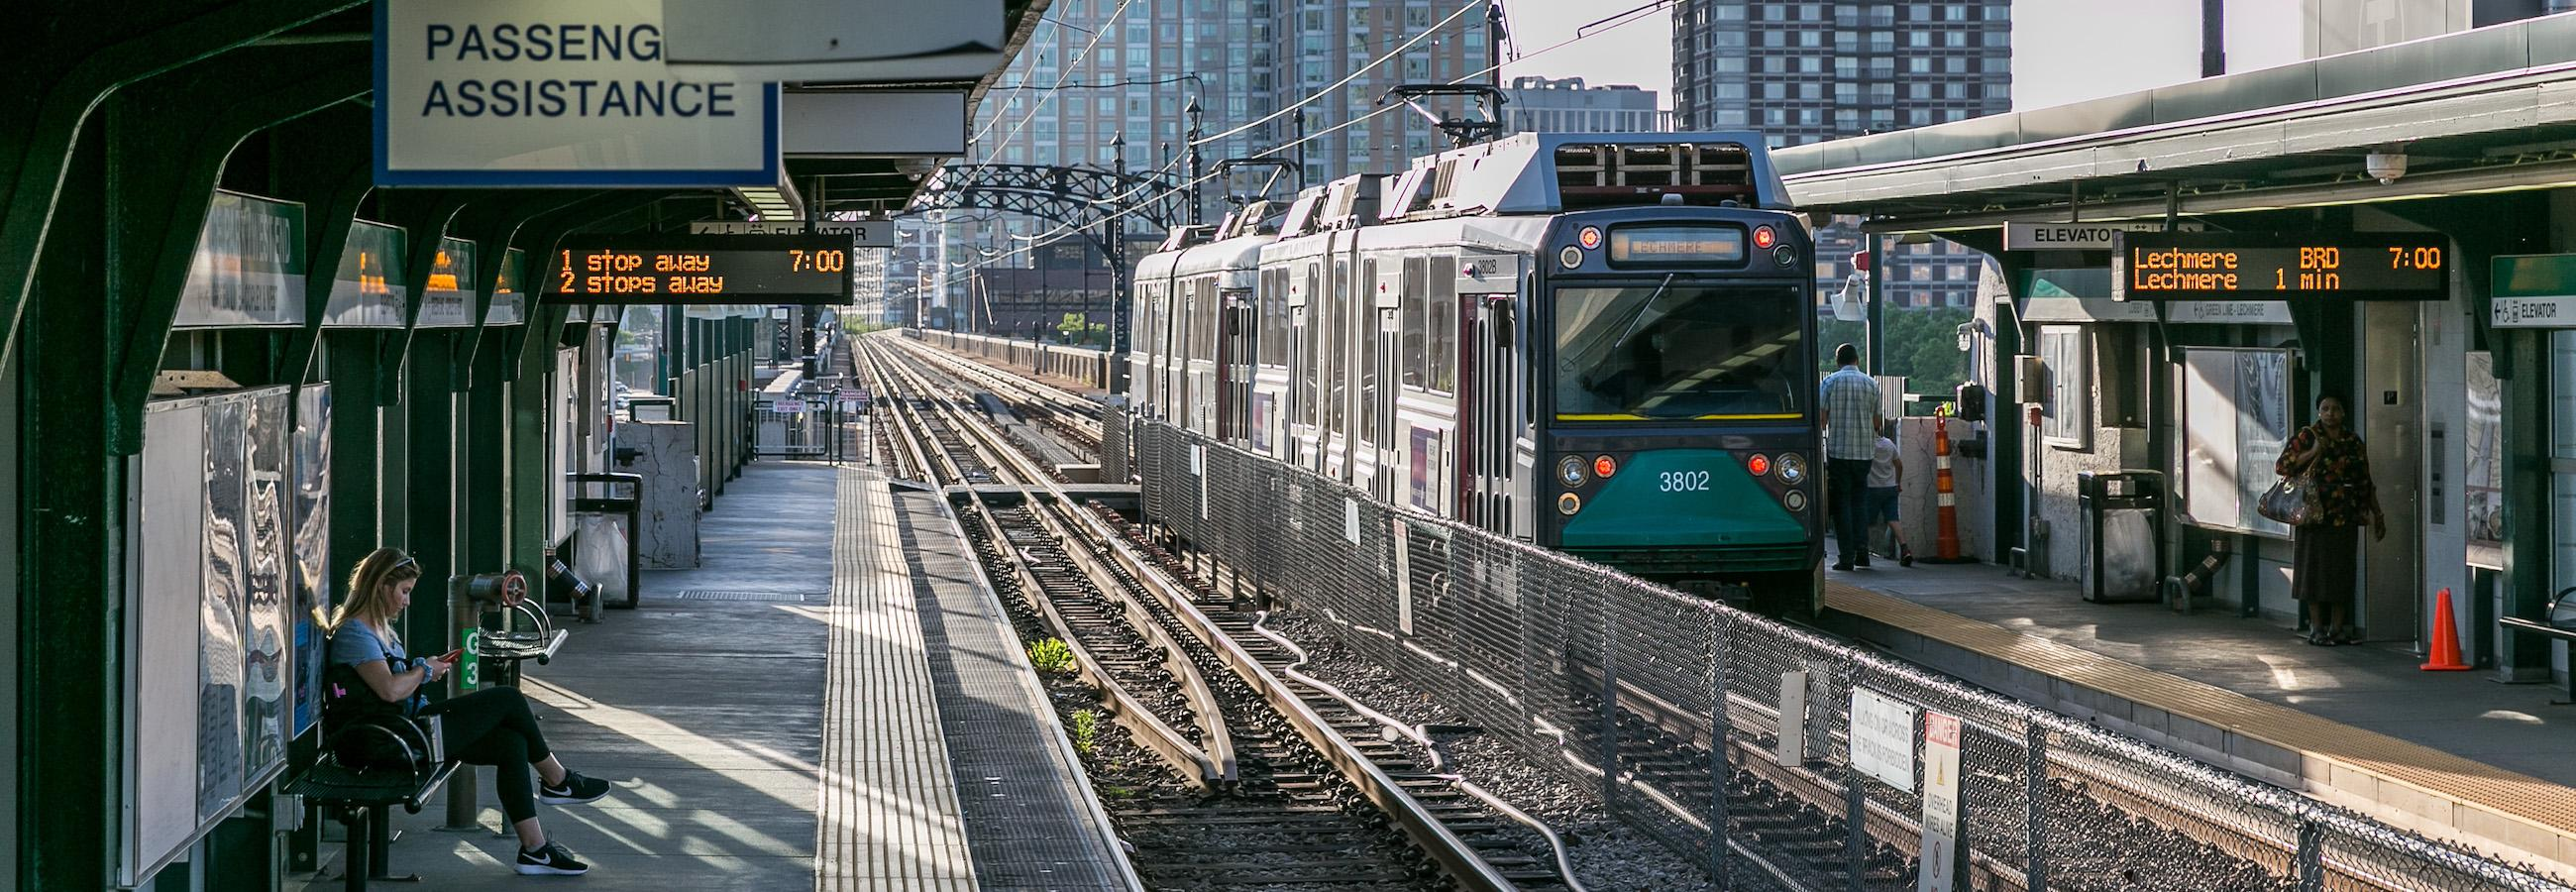 Green Line train in station